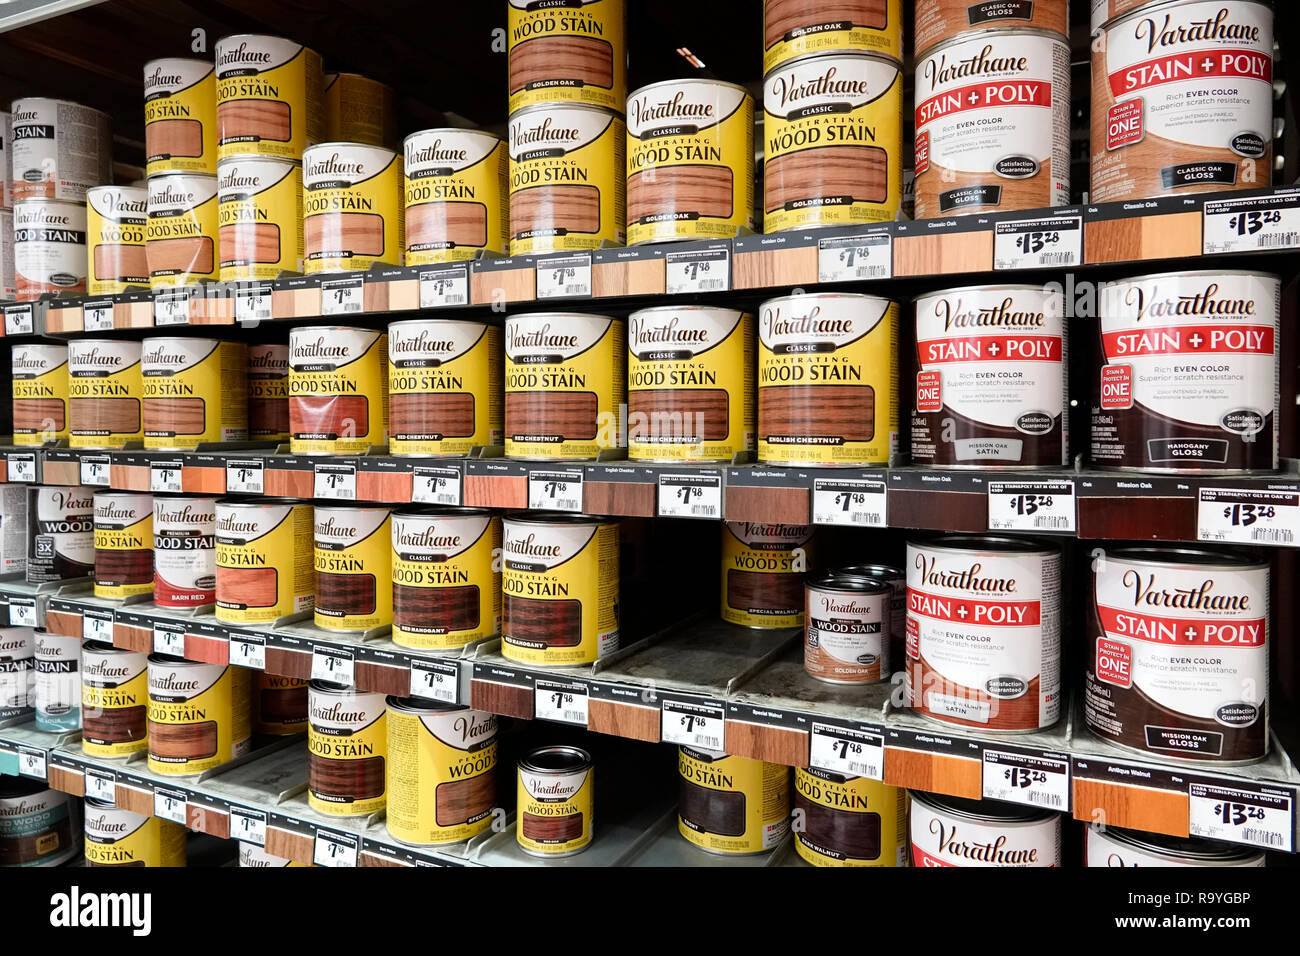 Miami Florida The Home Depot inside hardware big box store do it yourself shopping display sale shelves wood stain Varathane - Stock Image